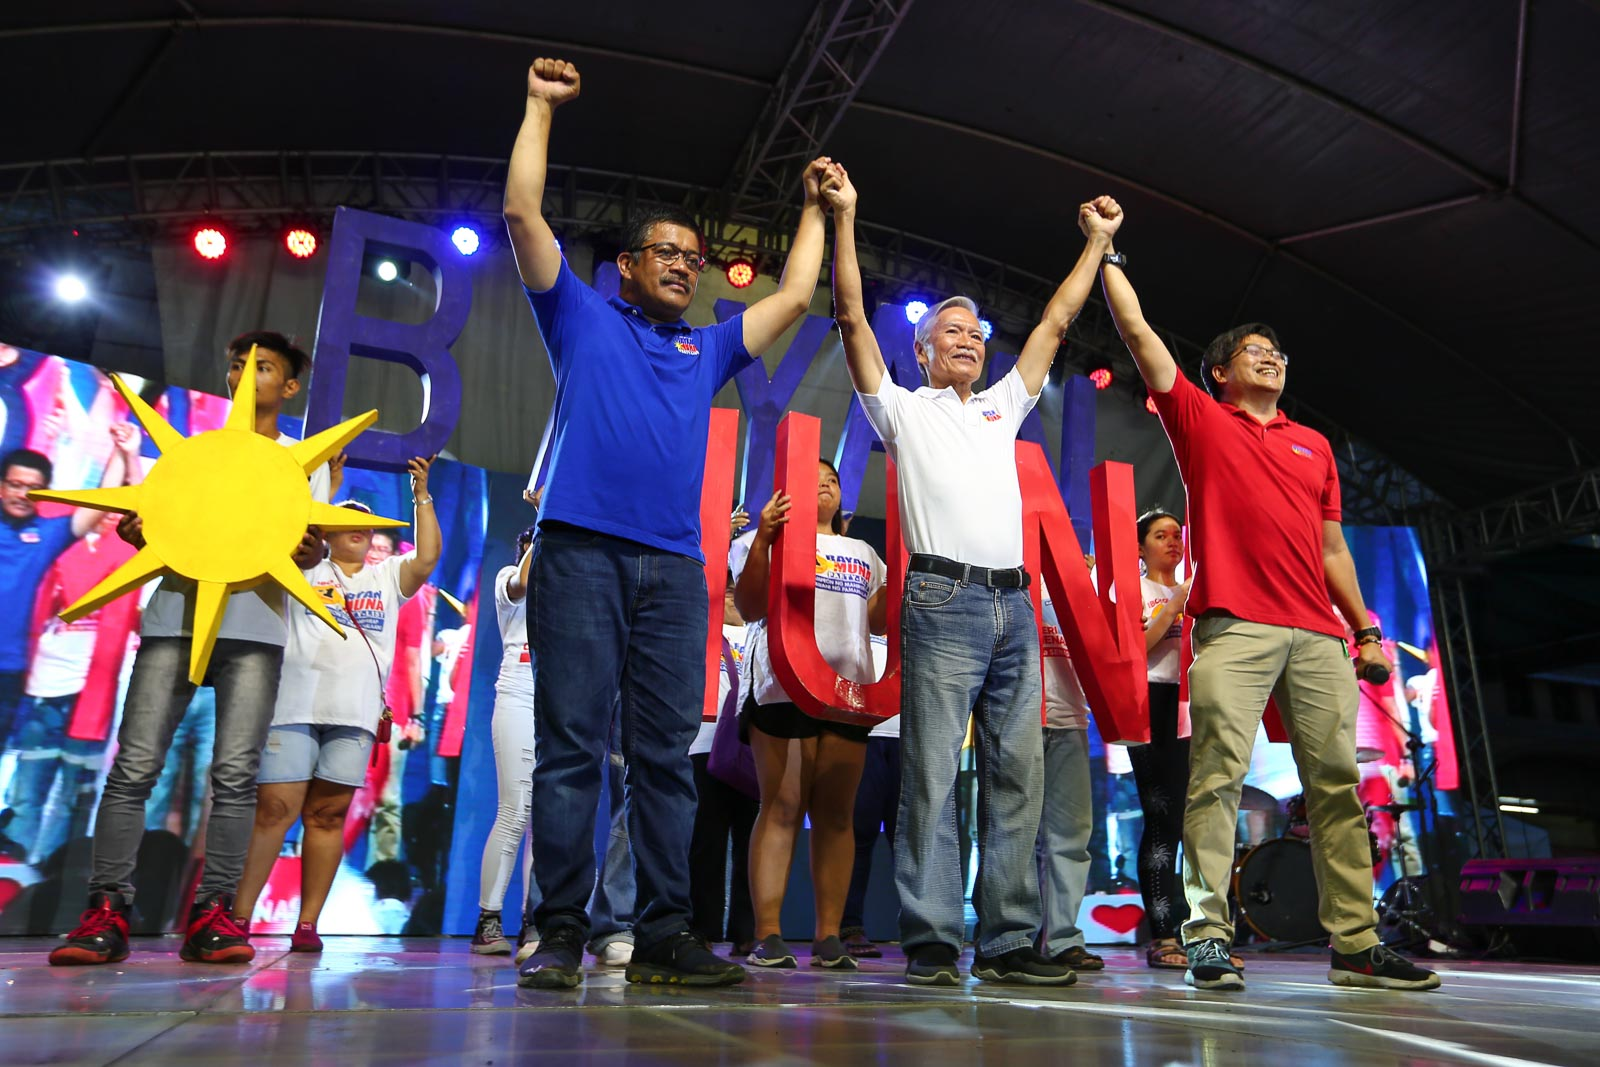 NOT EASY VICTORY. Bayan Muna ranks second in the 2019 party-list elections despite government's campaign against it. Photo by Jire Carreon/Rappler